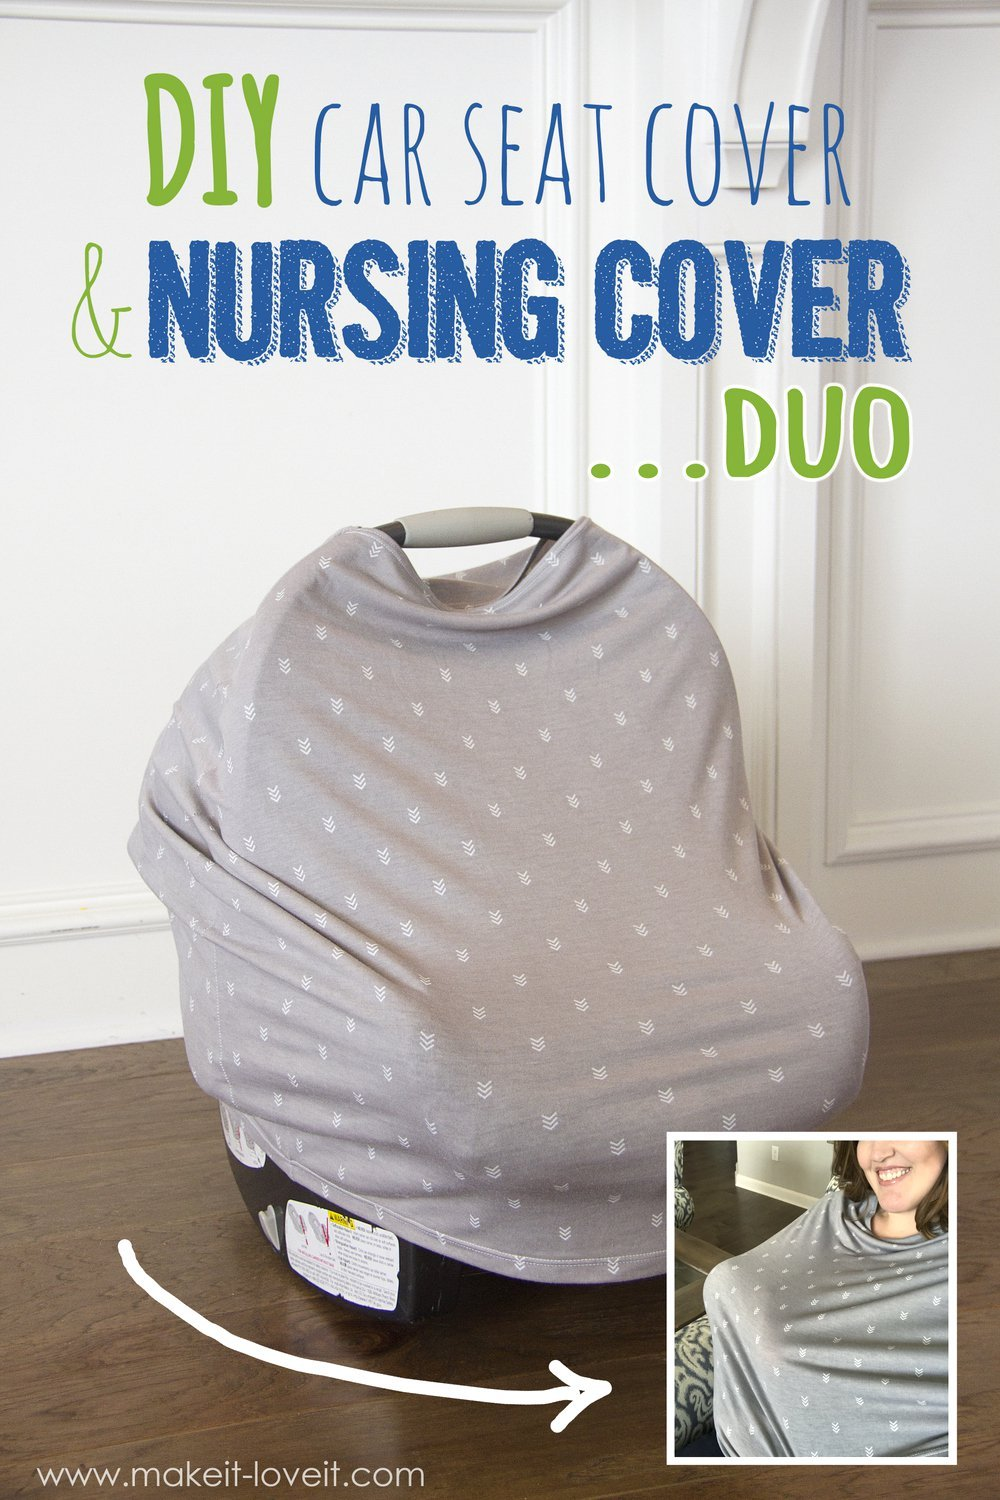 Diy Stretchy Car Seat Cover And Nursing Cover Duo Make